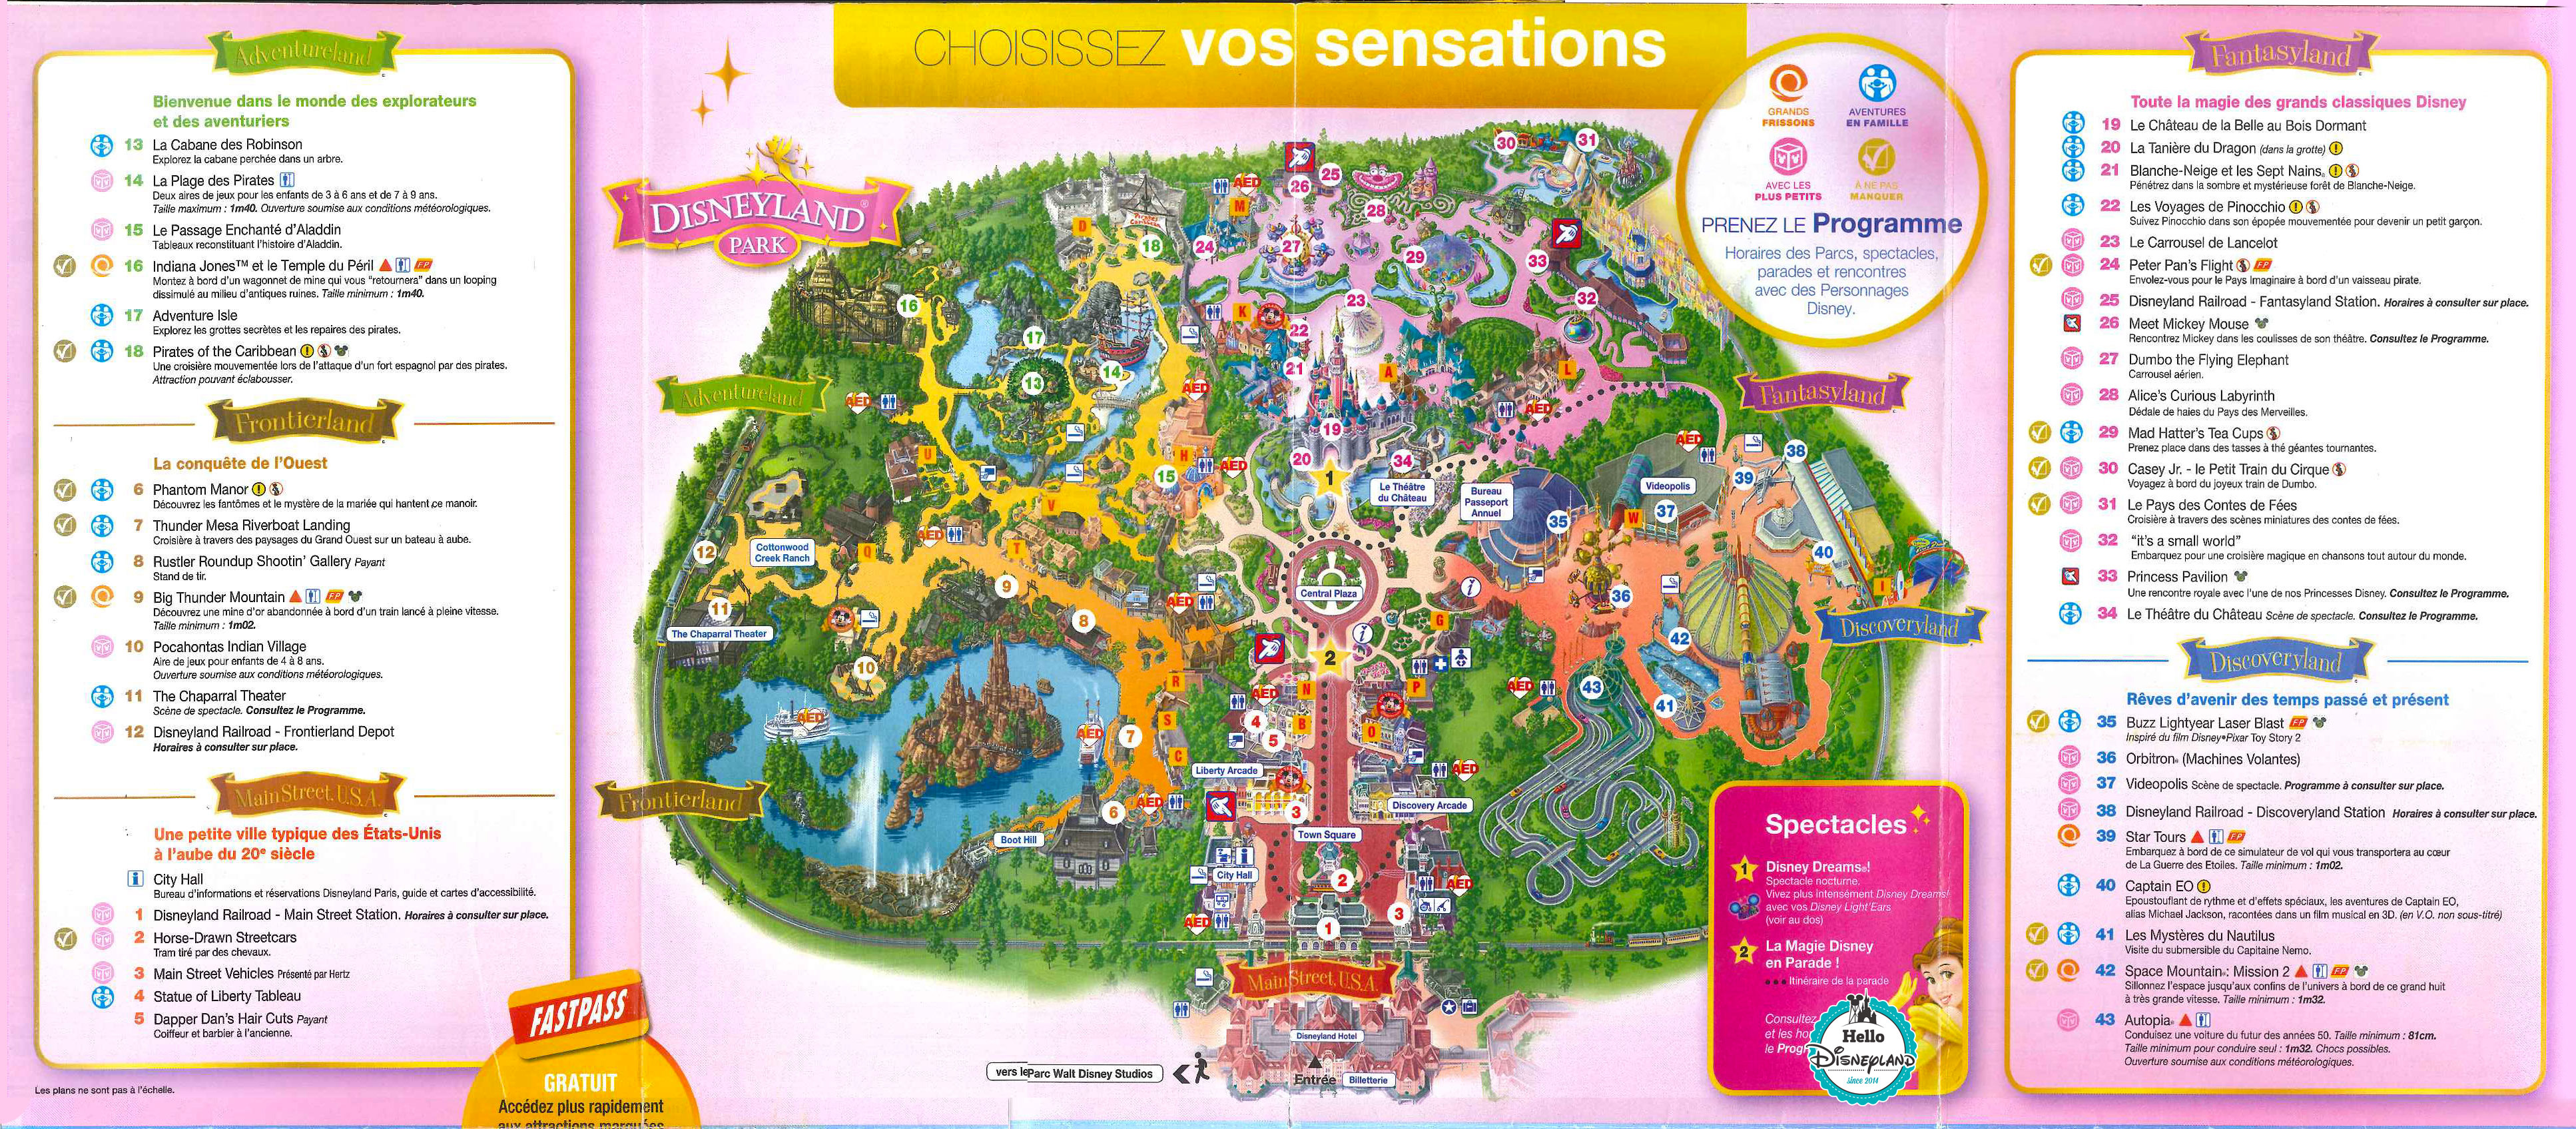 hello disneyland le blog n 1 sur disneyland paris plan des parcs disneyland paris programme. Black Bedroom Furniture Sets. Home Design Ideas